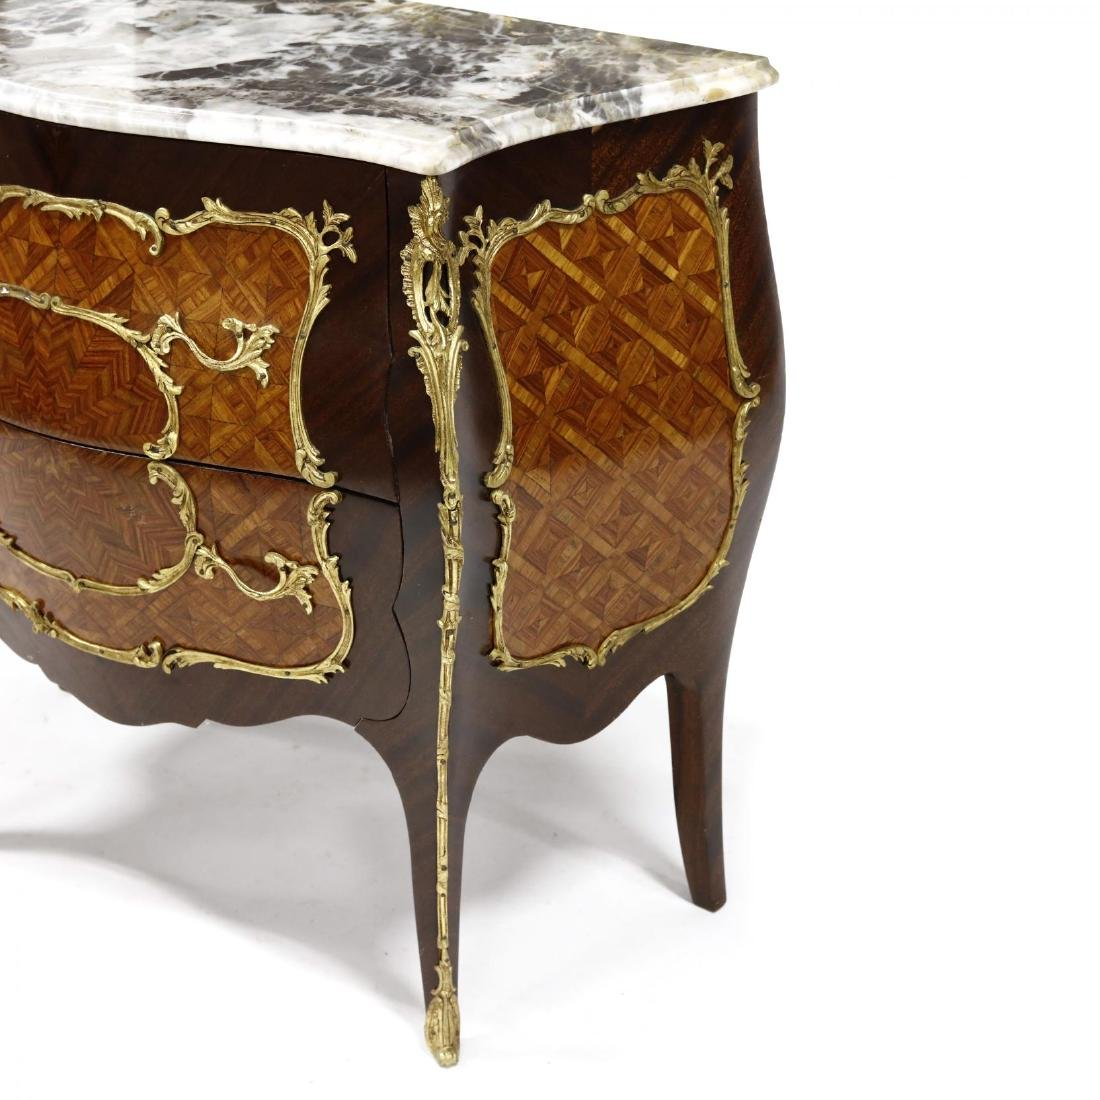 Louis XV Style Marble Top Parquetry Inlaid Commode - 3